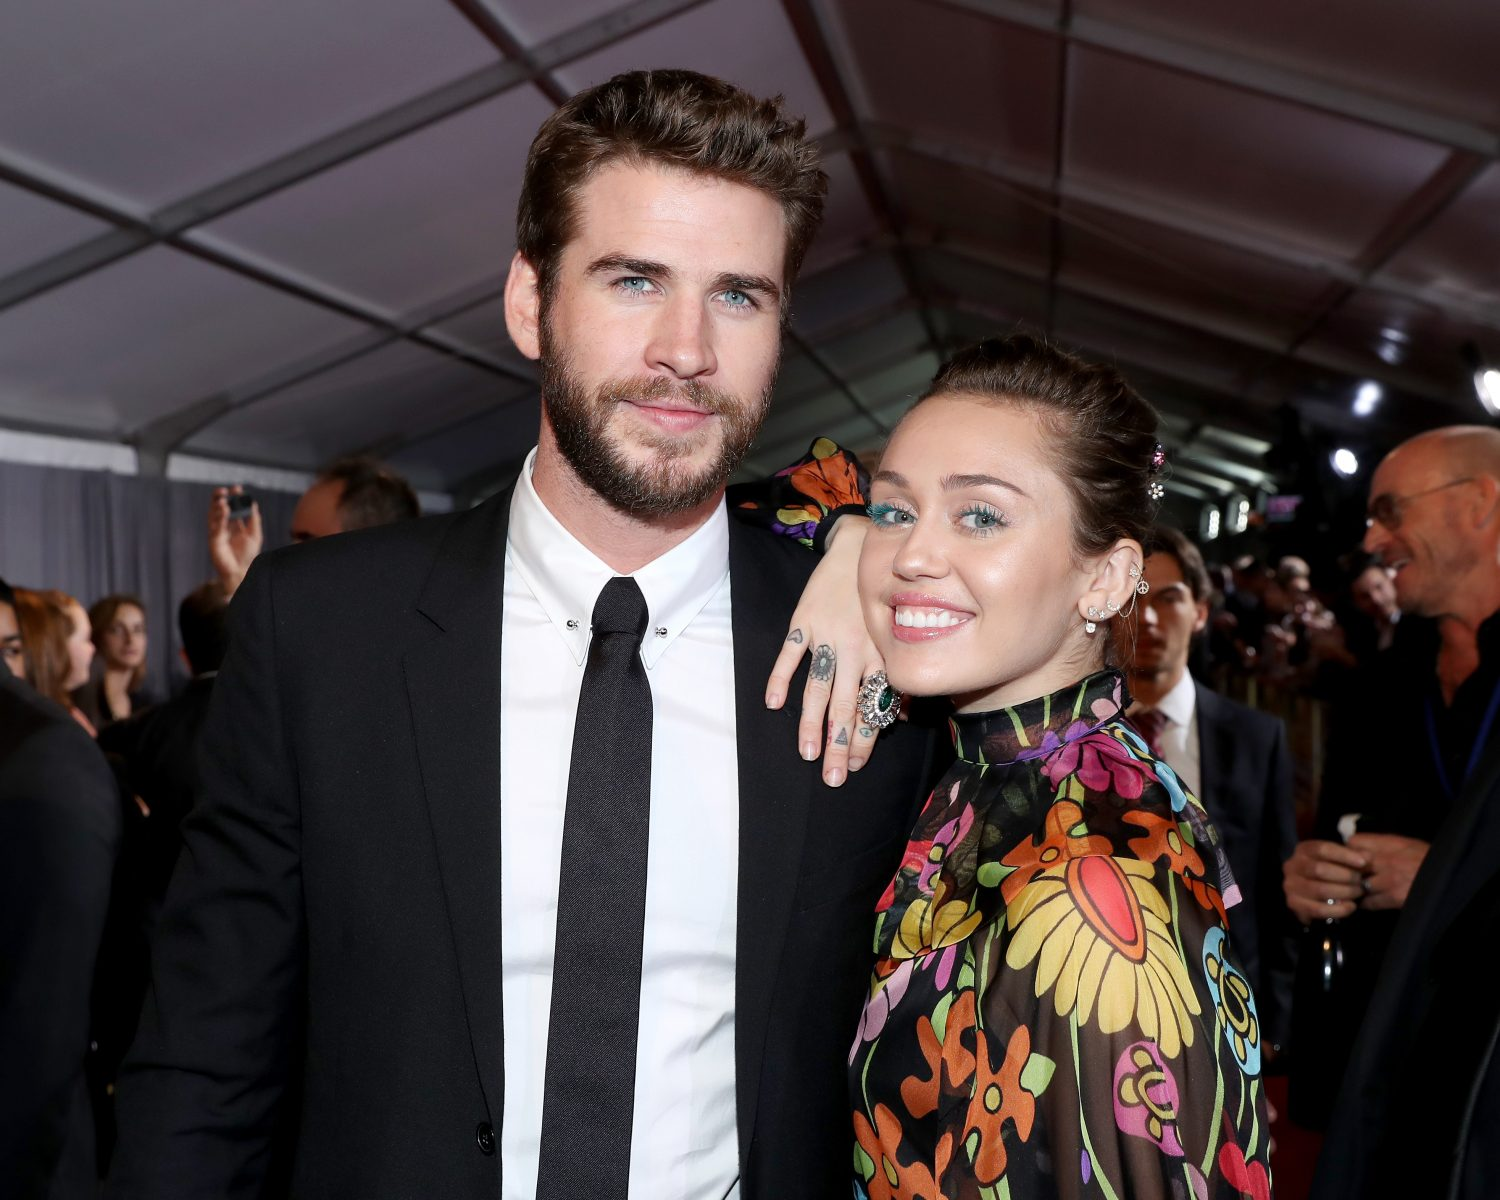 Miley Cyrus Reveals Why She and Liam Hemsworth Finally Decided to Get Married